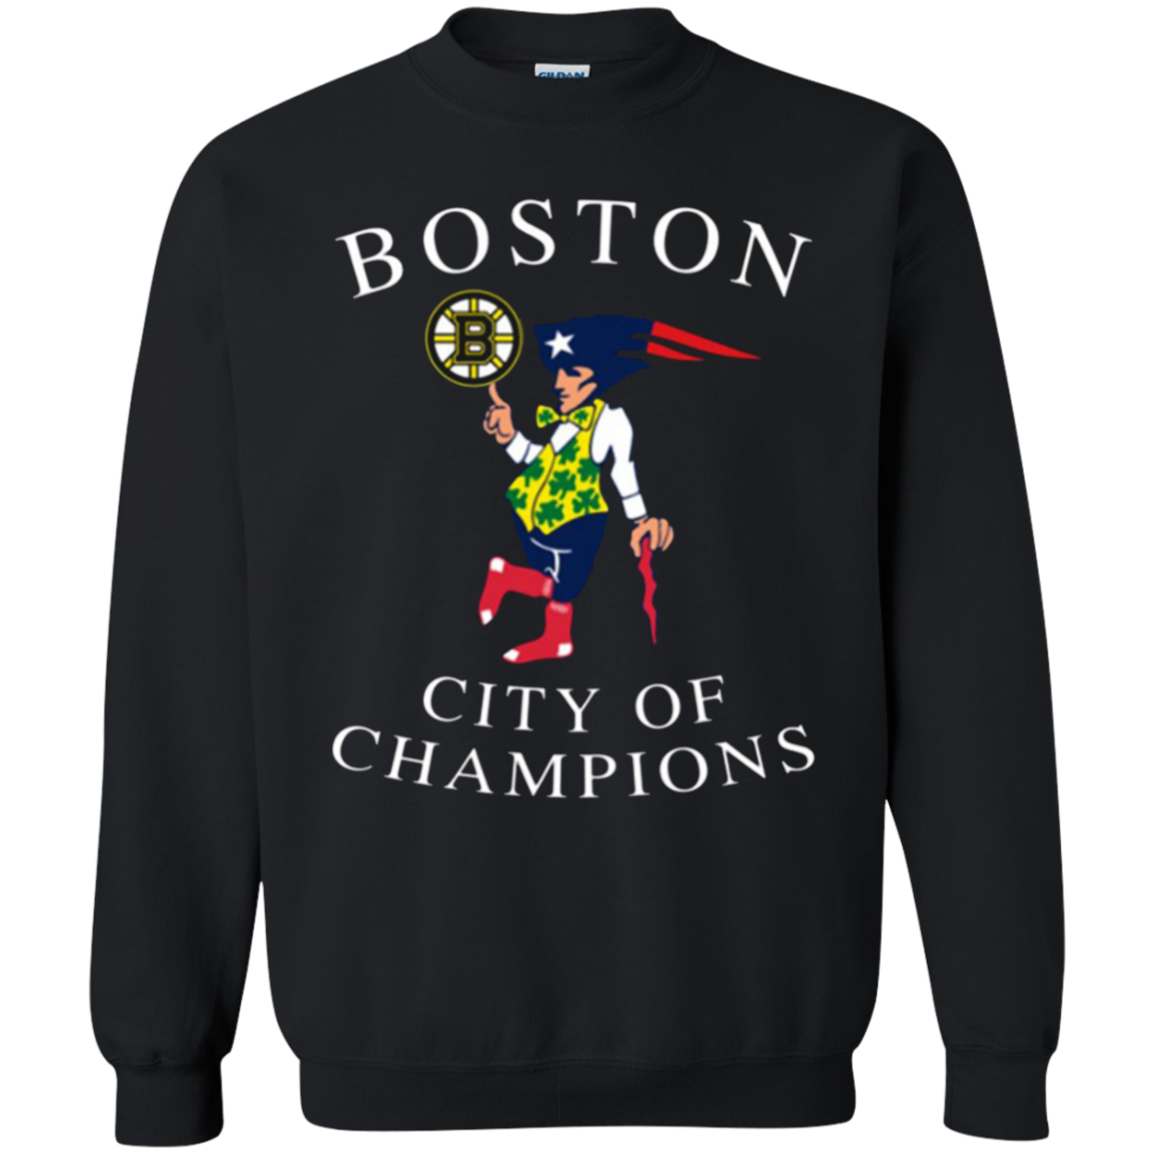 City Of Champions Sweatshirt